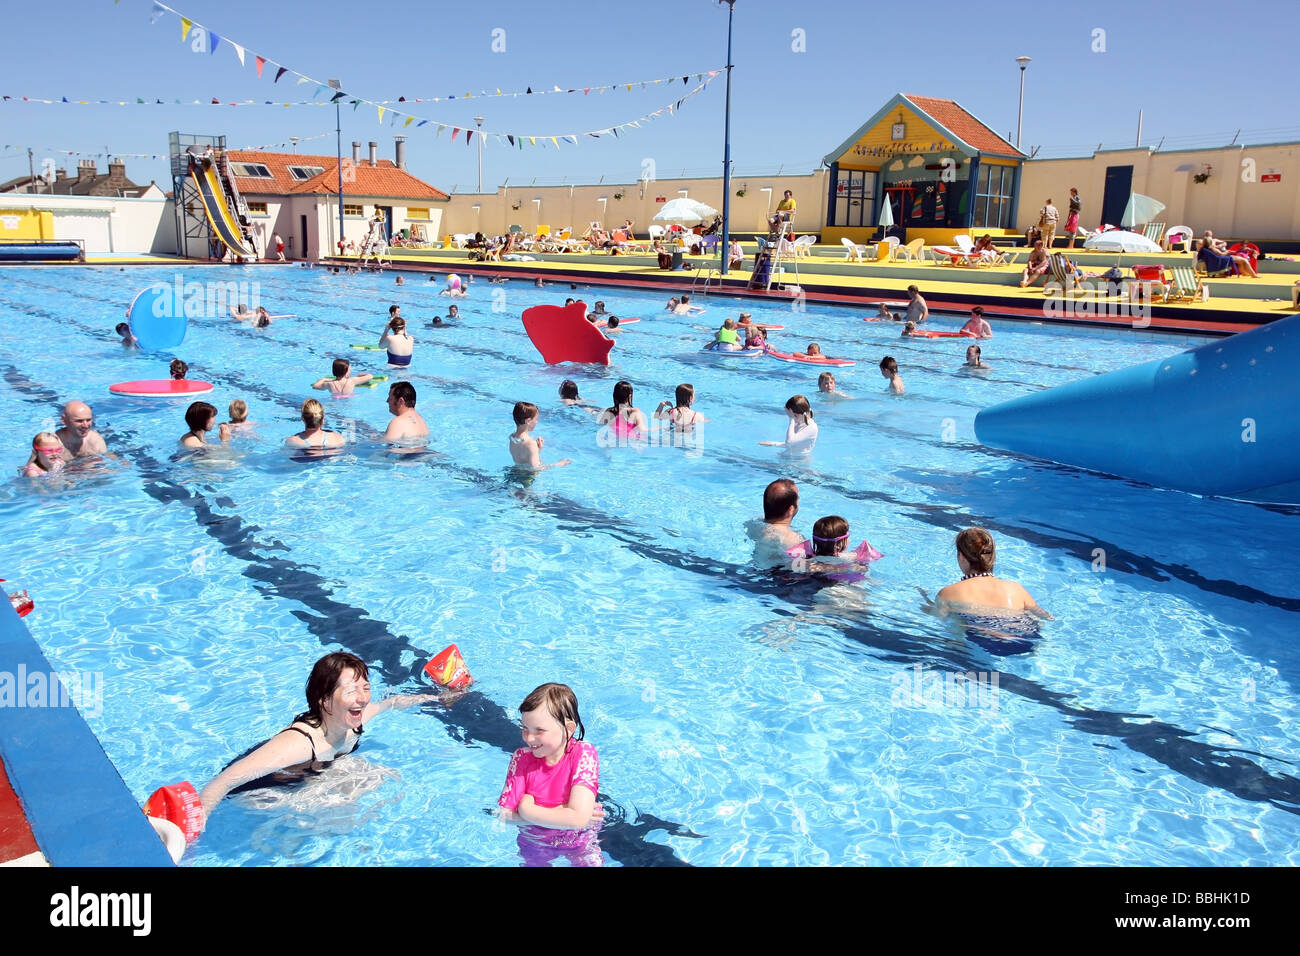 The Historic Open Air Swimming Pool At Stonehaven